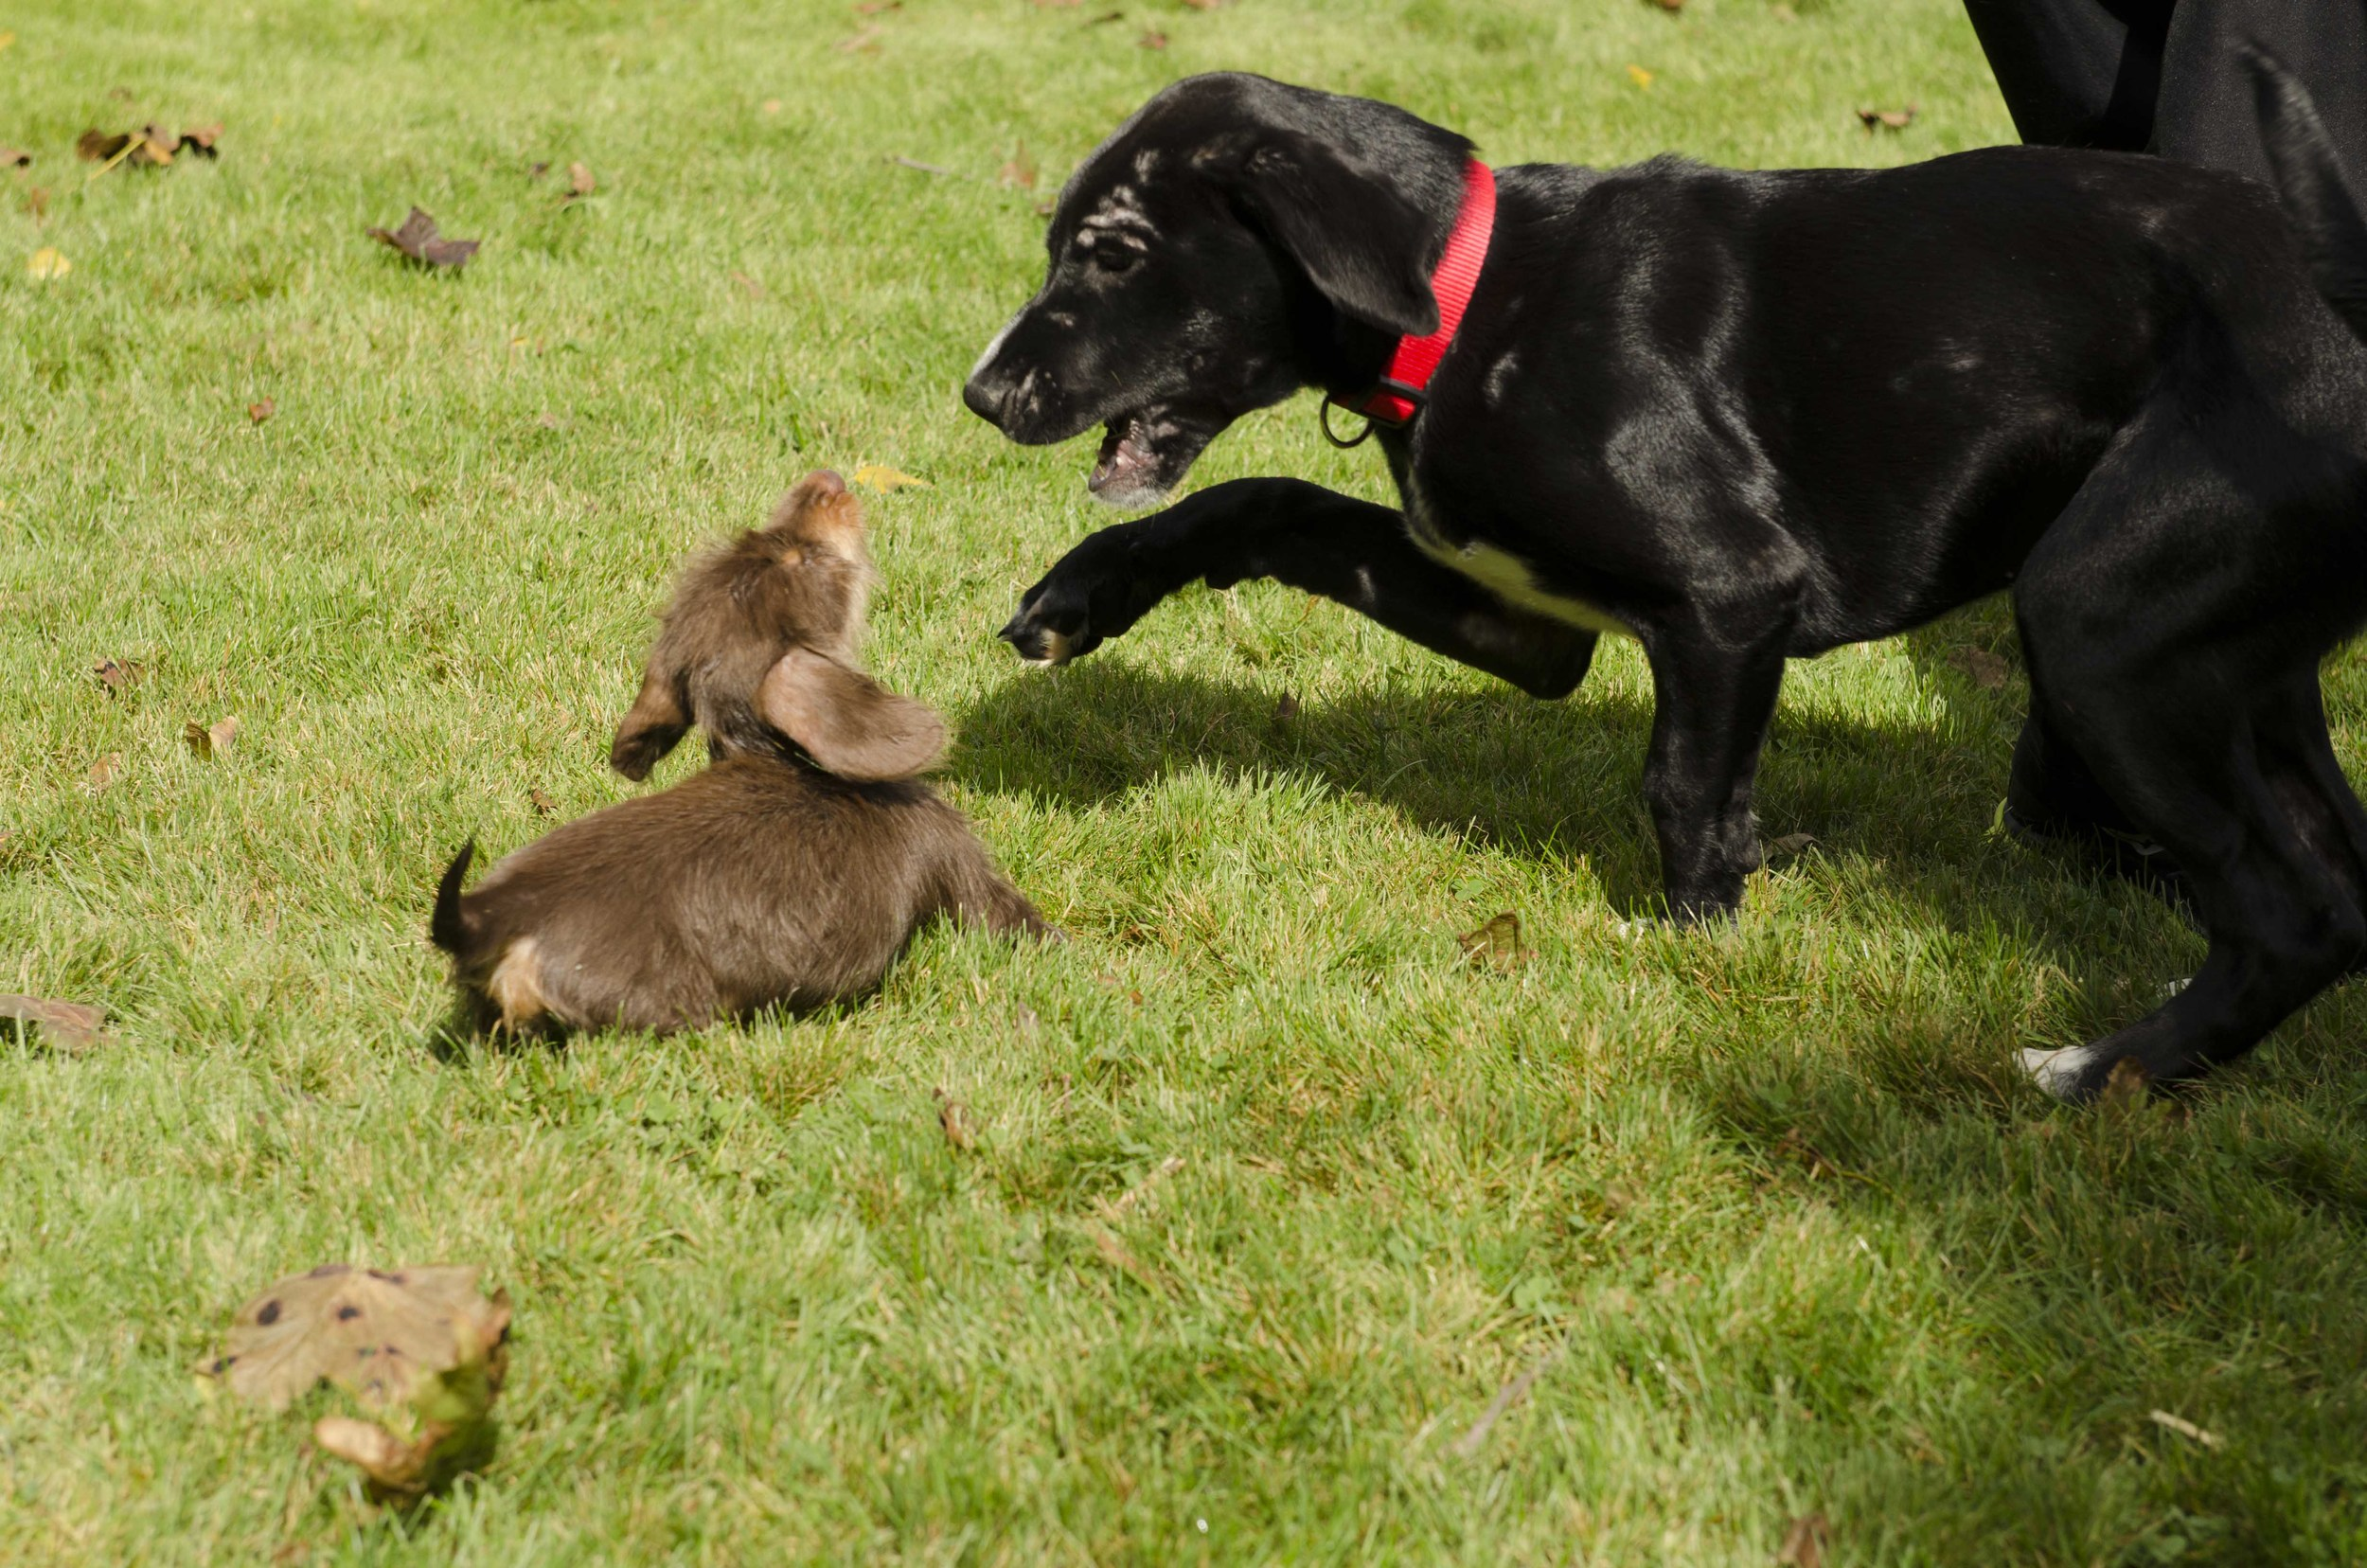 A miniature long haired dachshund fights with a larger dog